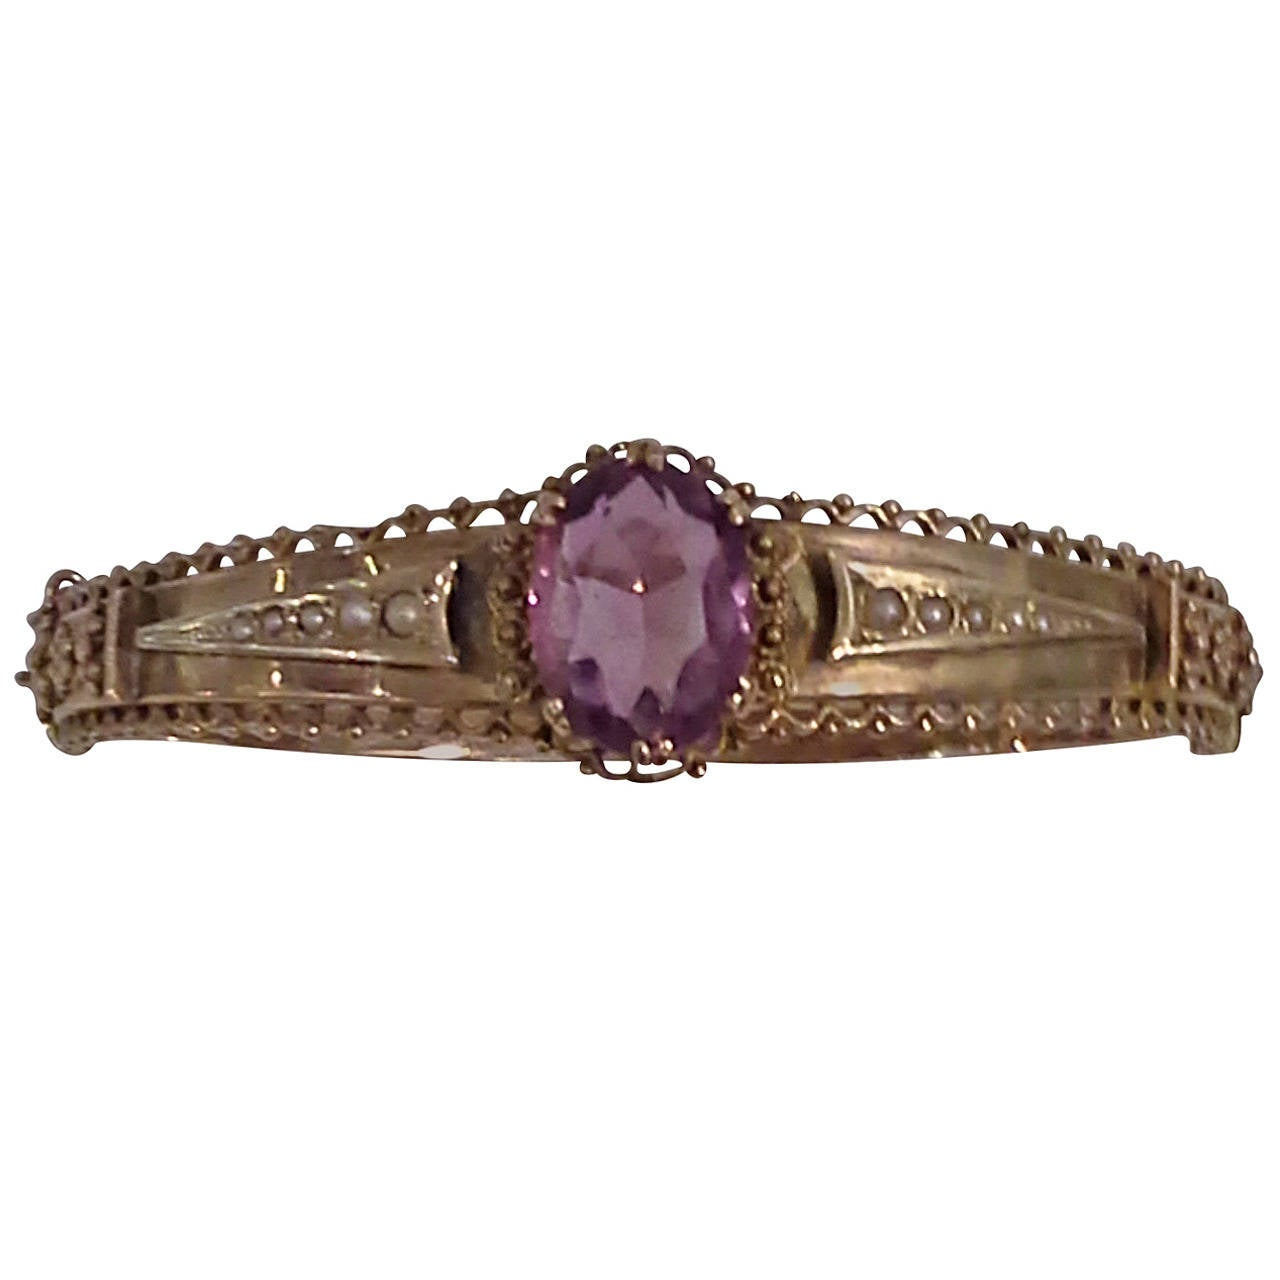 Victorian Amethyst And Seed Pearl Bangle Or Bracelet 9k Gold, Stamped 375 1